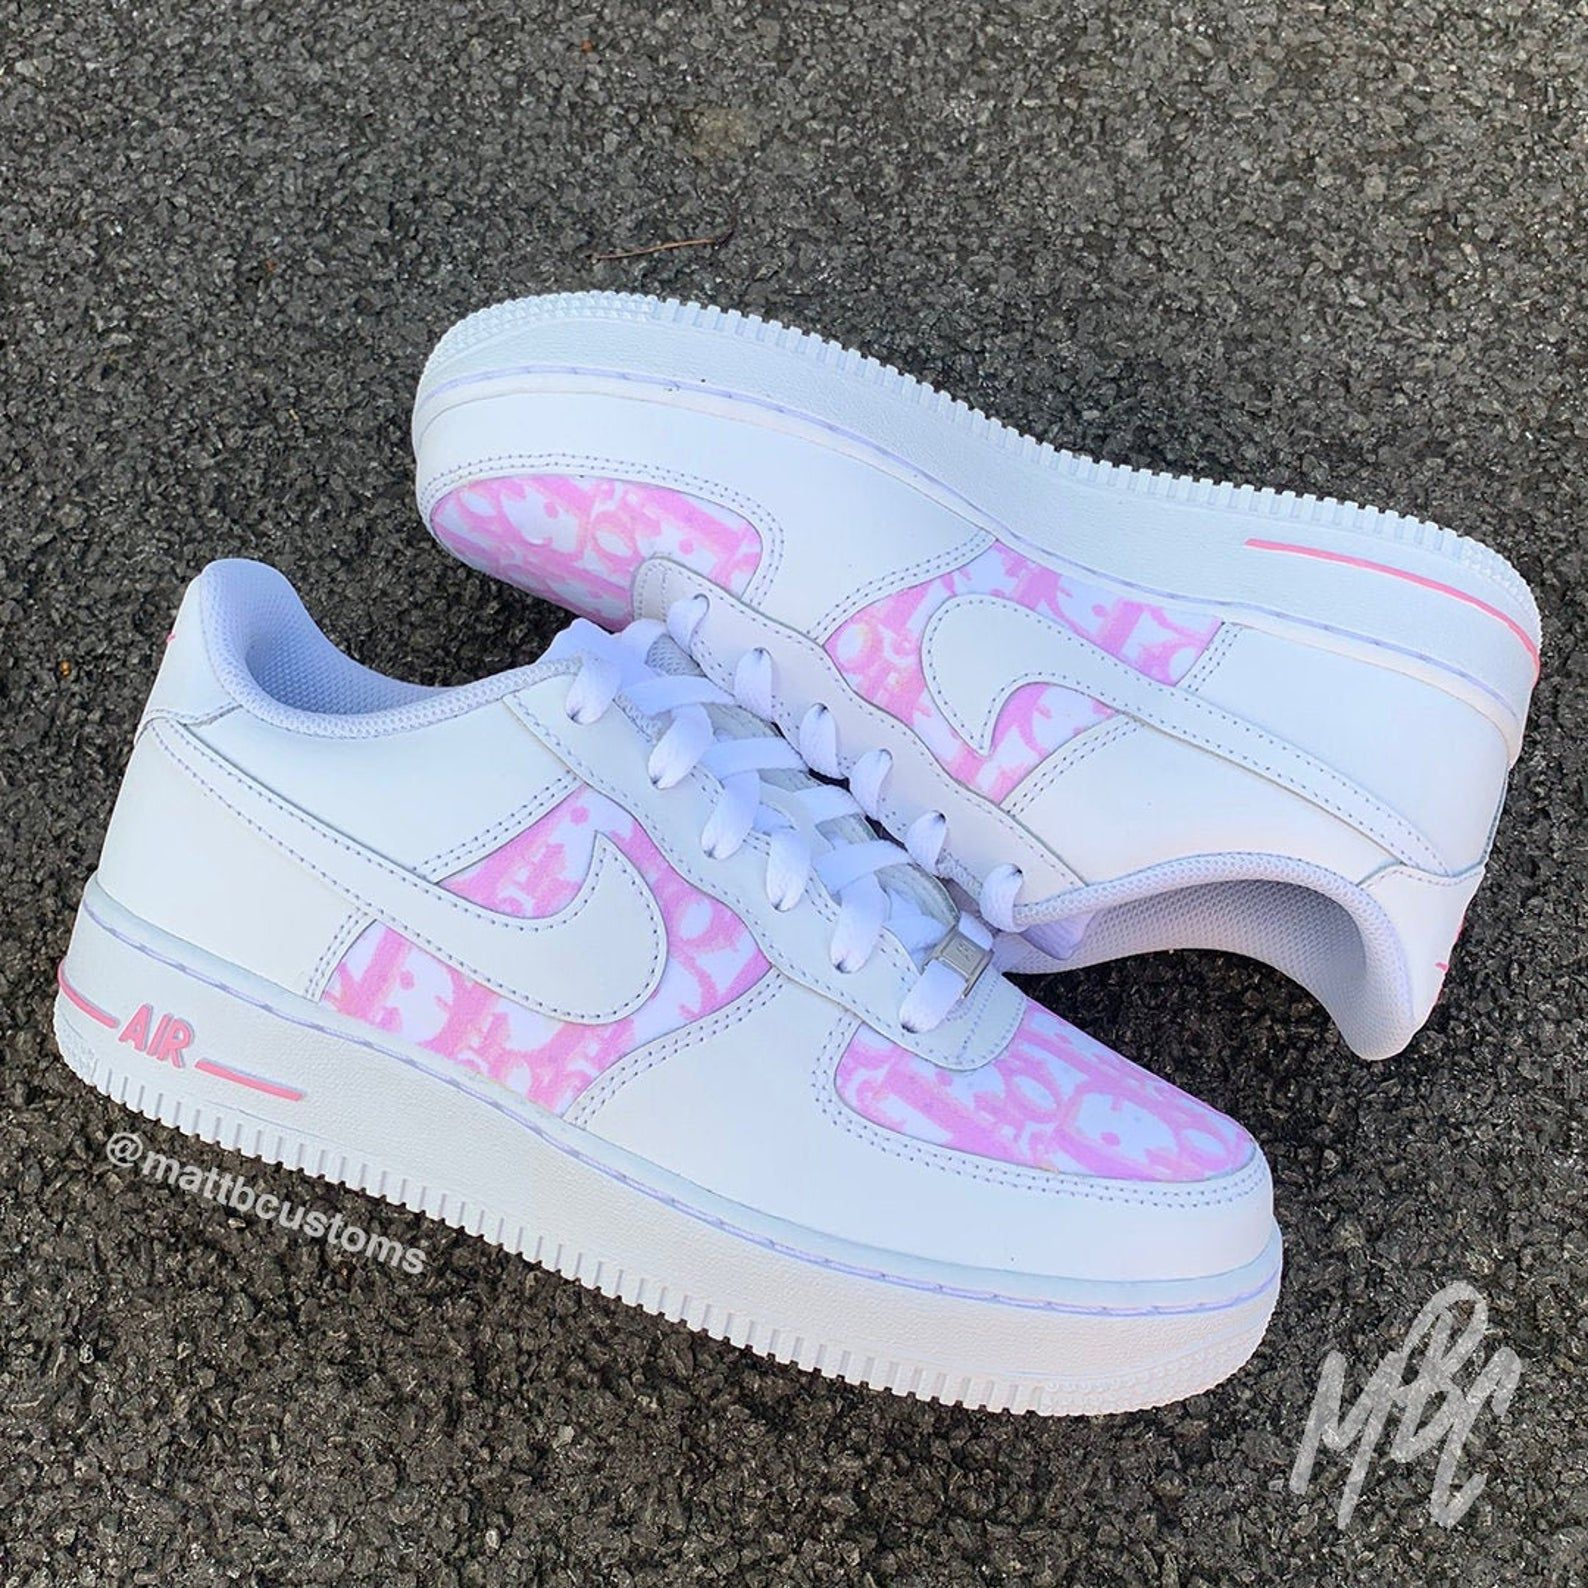 Nike Air Force 1 Pink Dior | Etsy | Nike air shoes, Hype ...